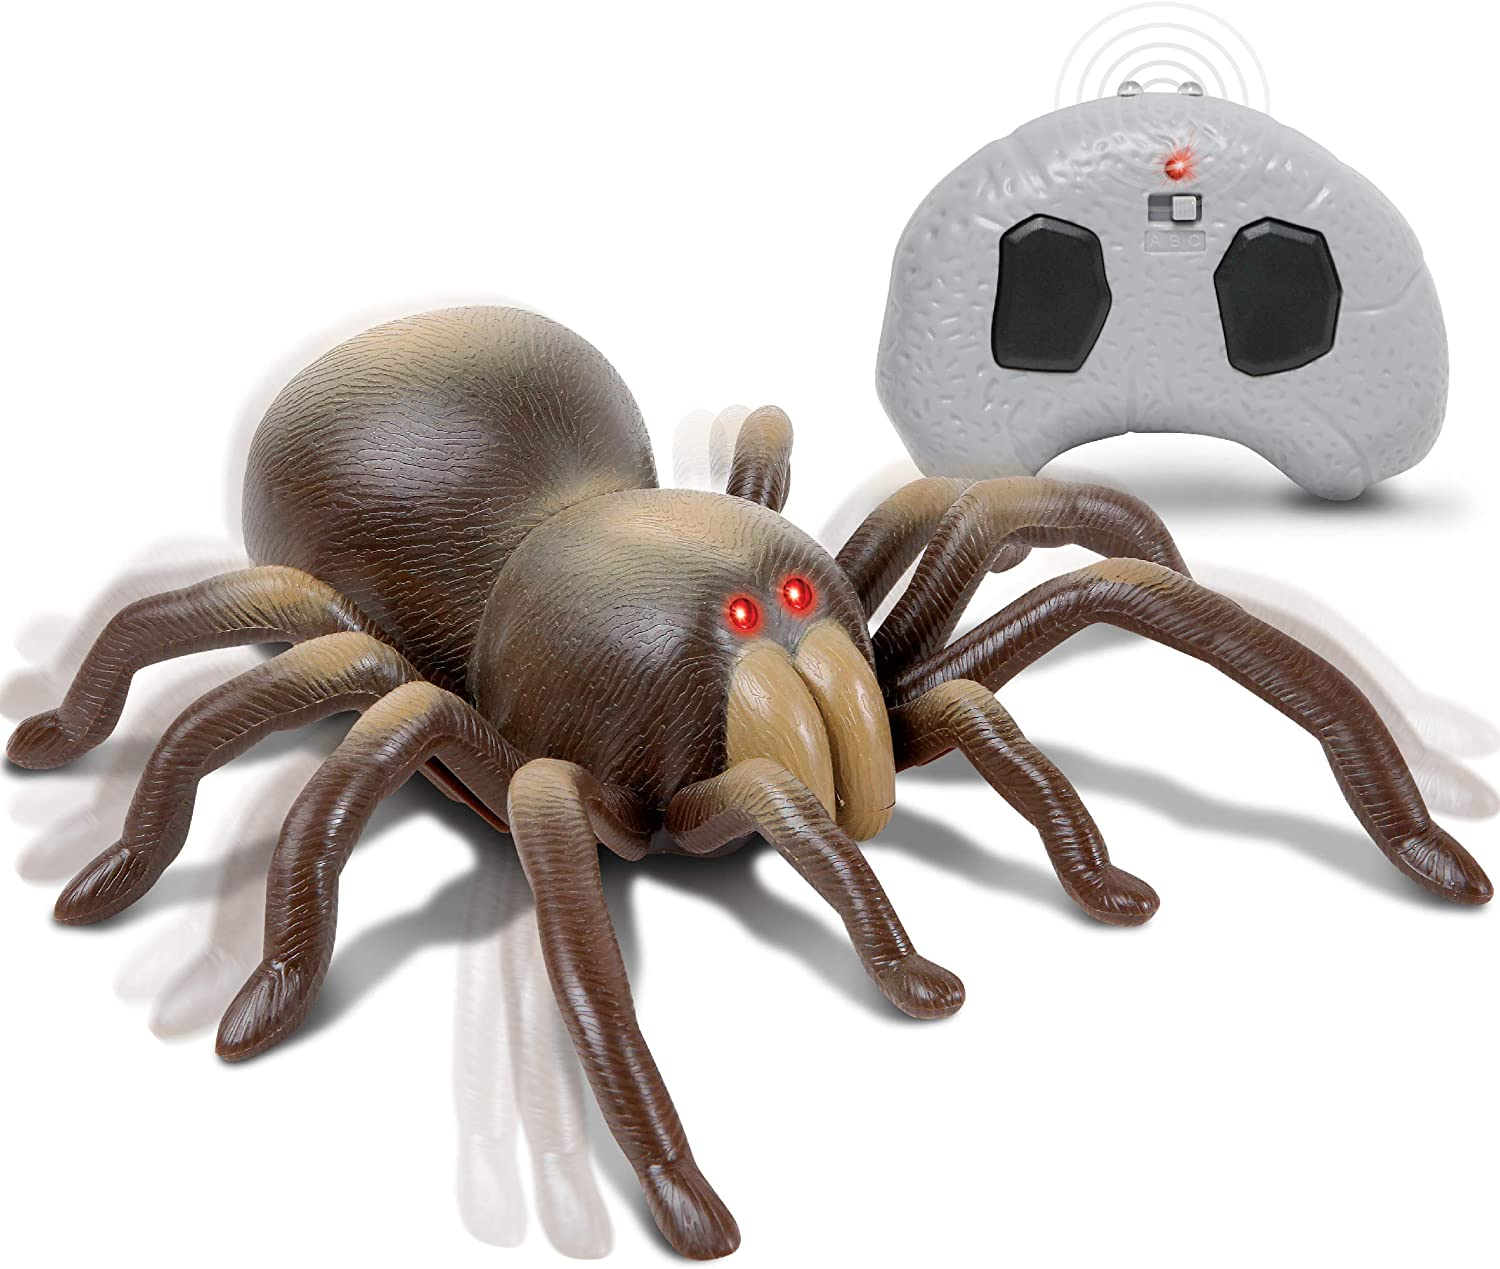 Top 5 Best Remote Control Spider Toys Your Kids Will Love 5